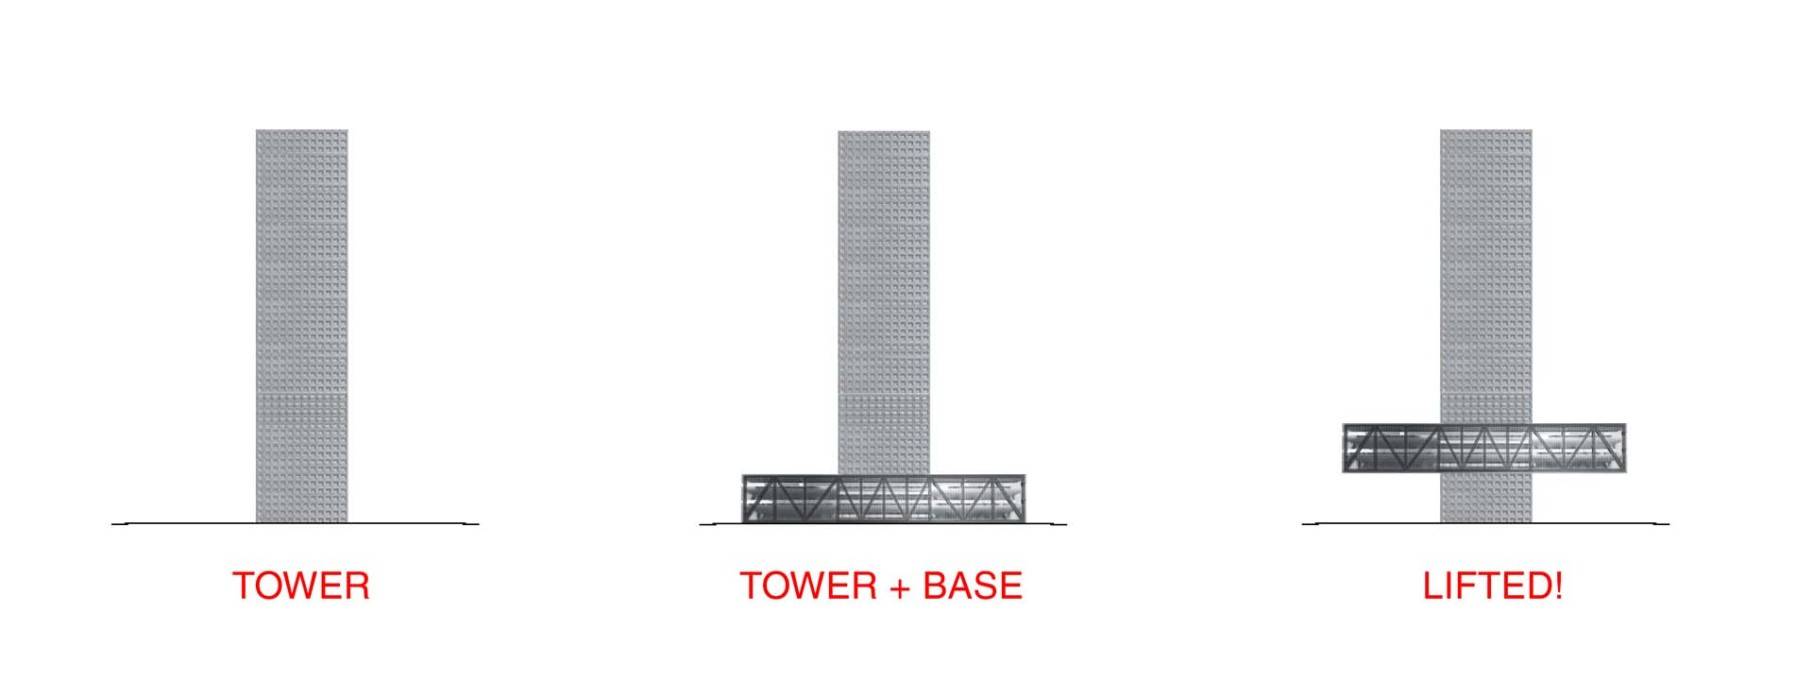 "OMA describes how the building's ""floating base"" has ""crept up the tower…as if lifted by the same speculative euphoria that drives the market"". (Image: OMA)"